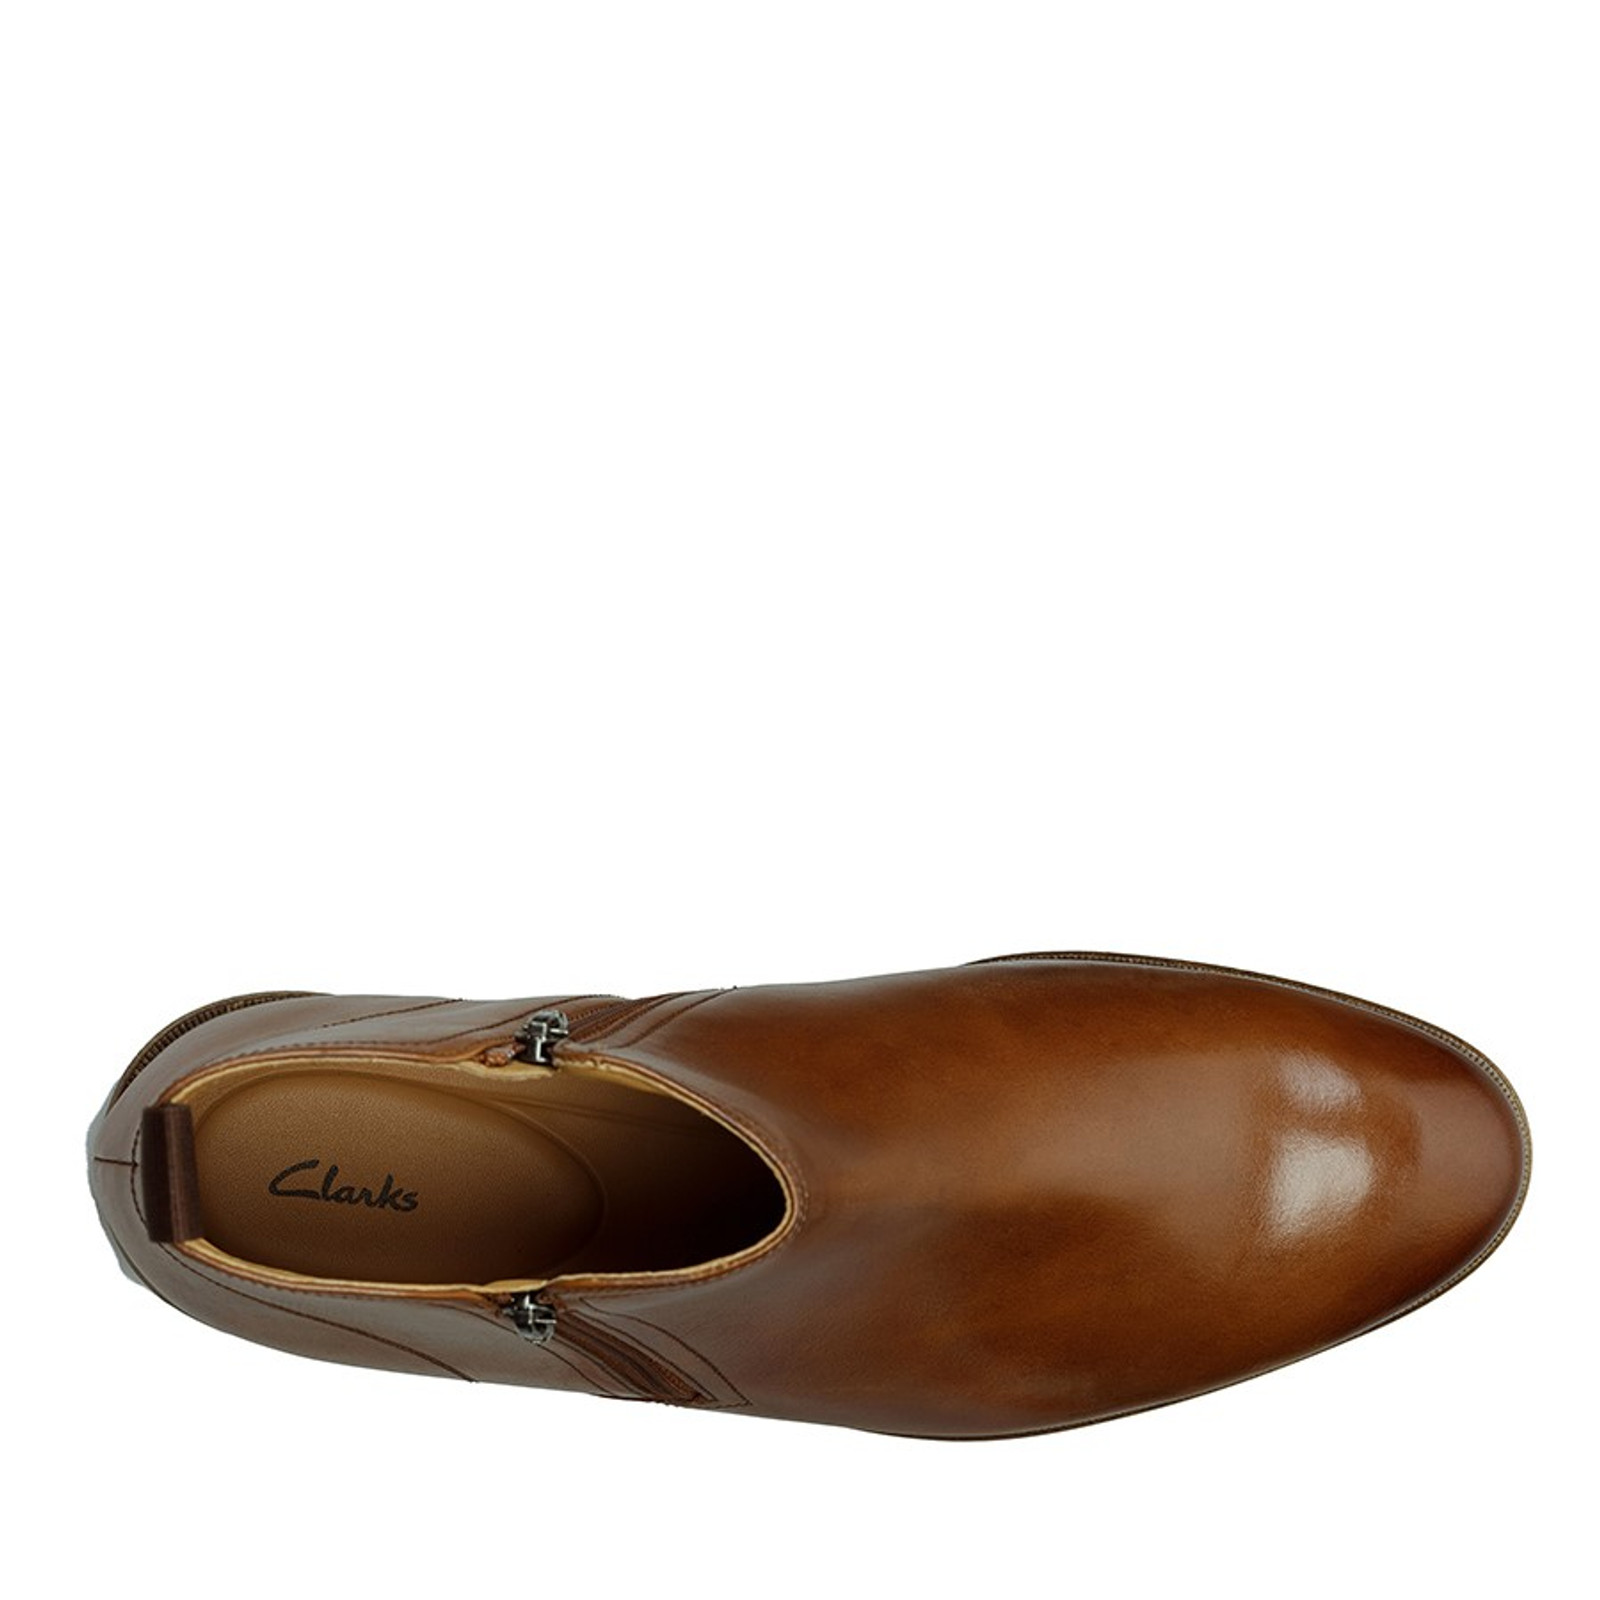 Clarks Mens STANFORD ZIP Tan Leather